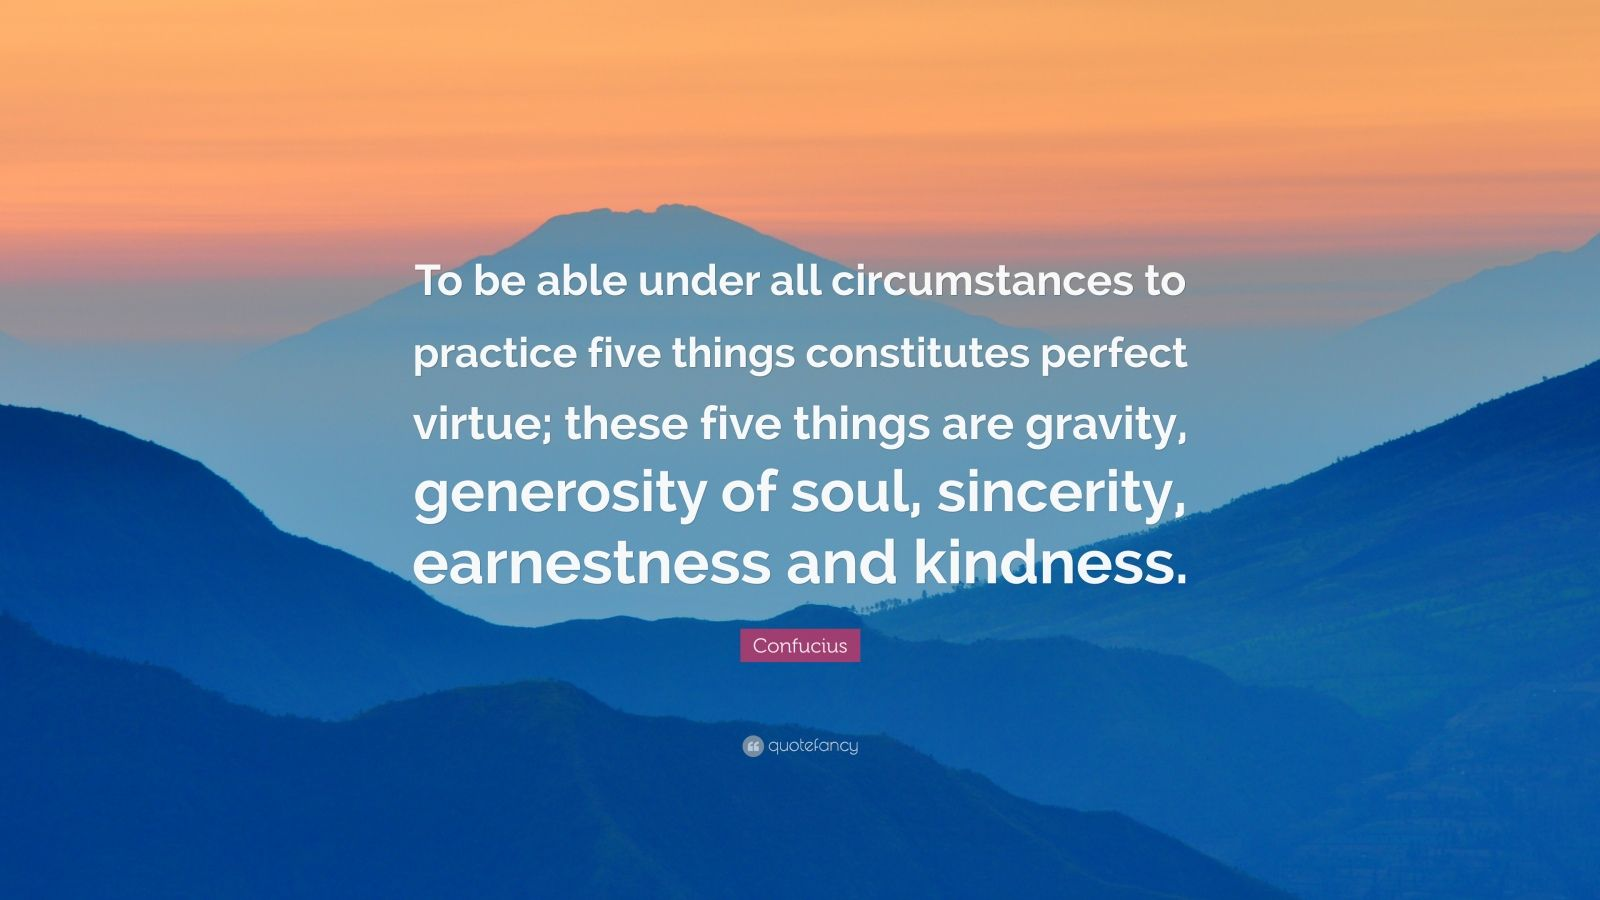 """Confucius Quote: """"To be able under all circumstances to practice five things constitutes perfect virtue; these five things are gravity, generosity of soul, sincerity, earnestness and kindness."""""""